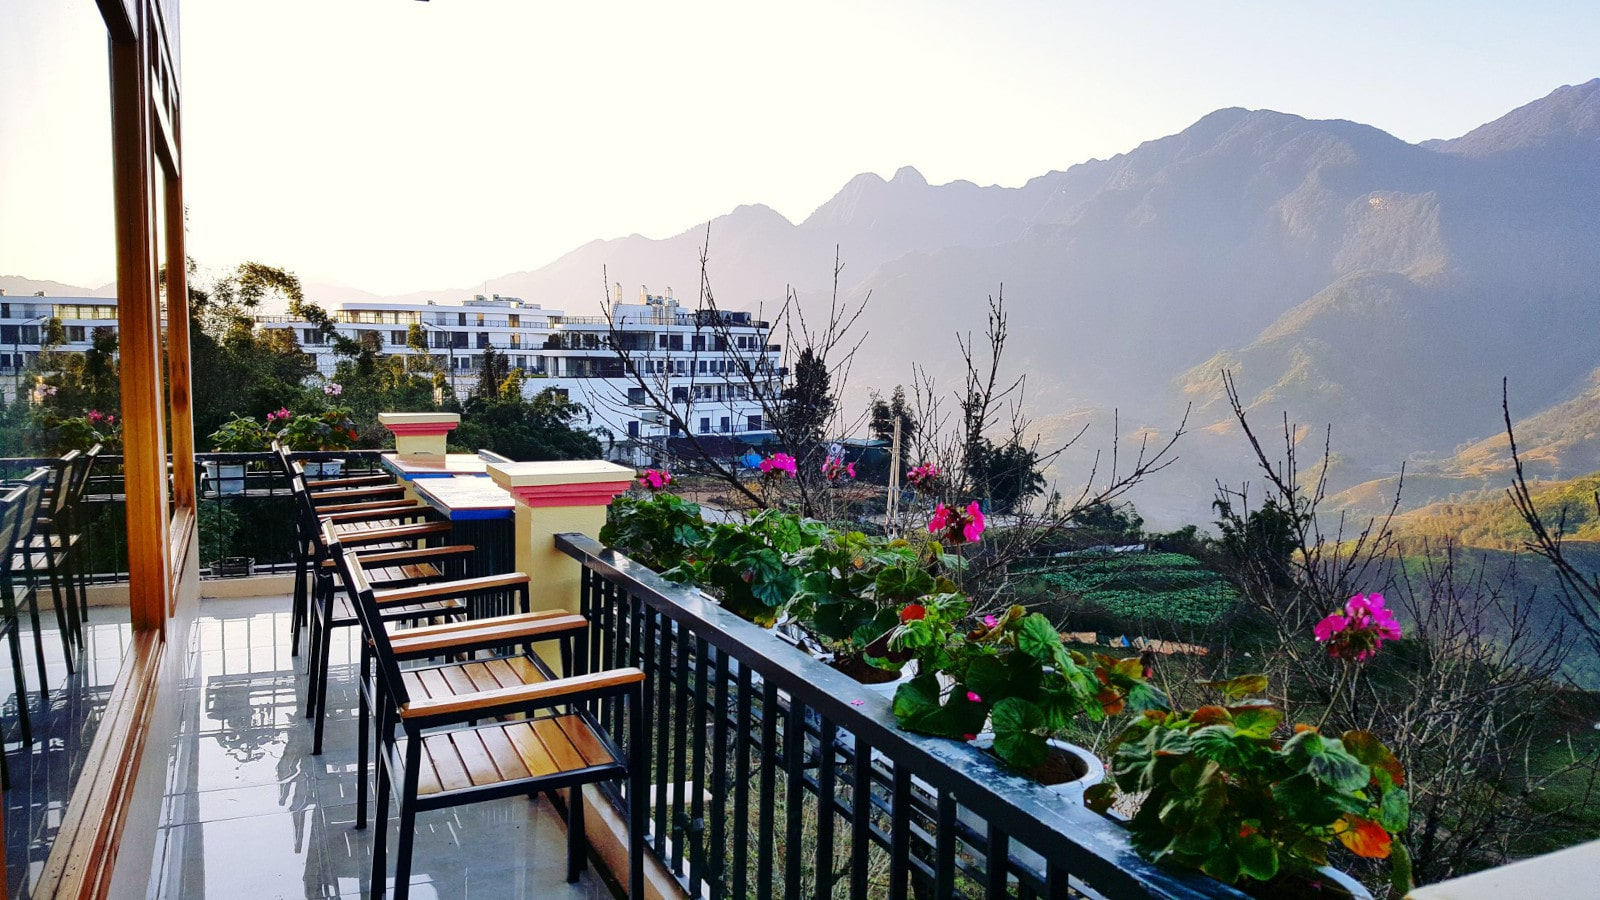 Image of the balcony at the Sapa Odyssey Hostel in Vietnam